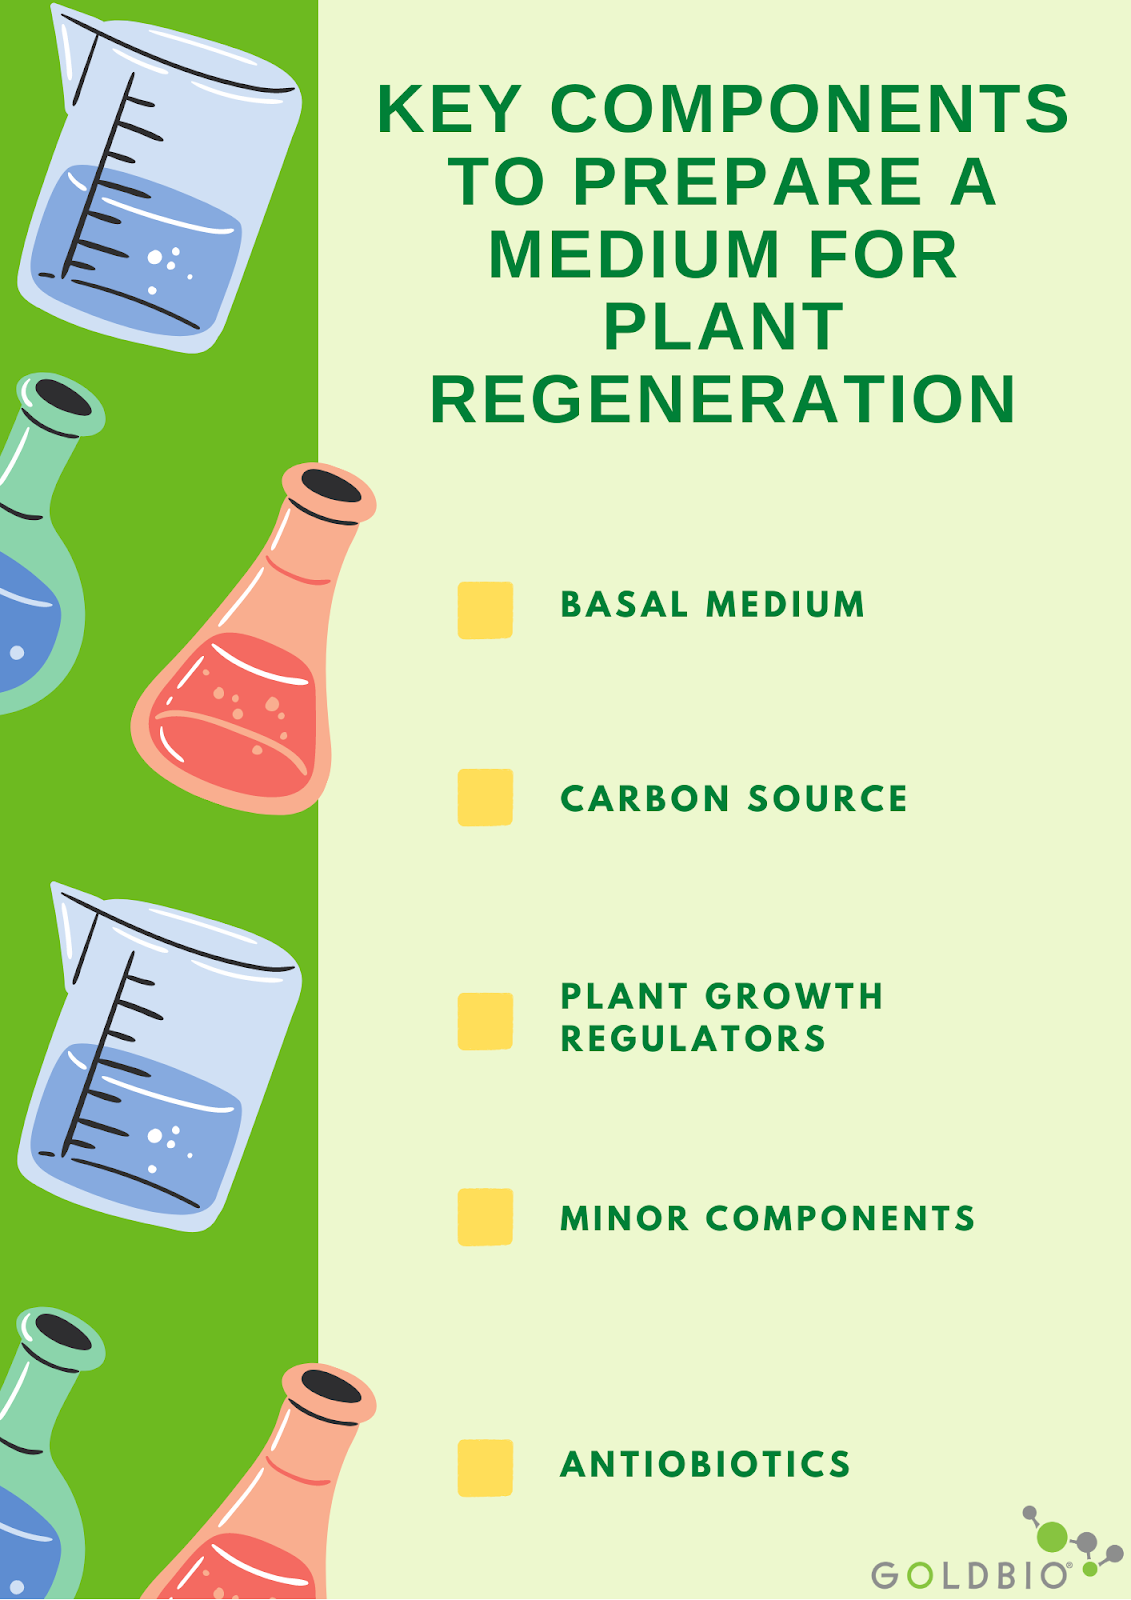 Key components to consider when preparing plant medium for plant regeneration: basal medium, major and minor components, and antibiotics. All need optimized to make an effective plant medium for regeneration.